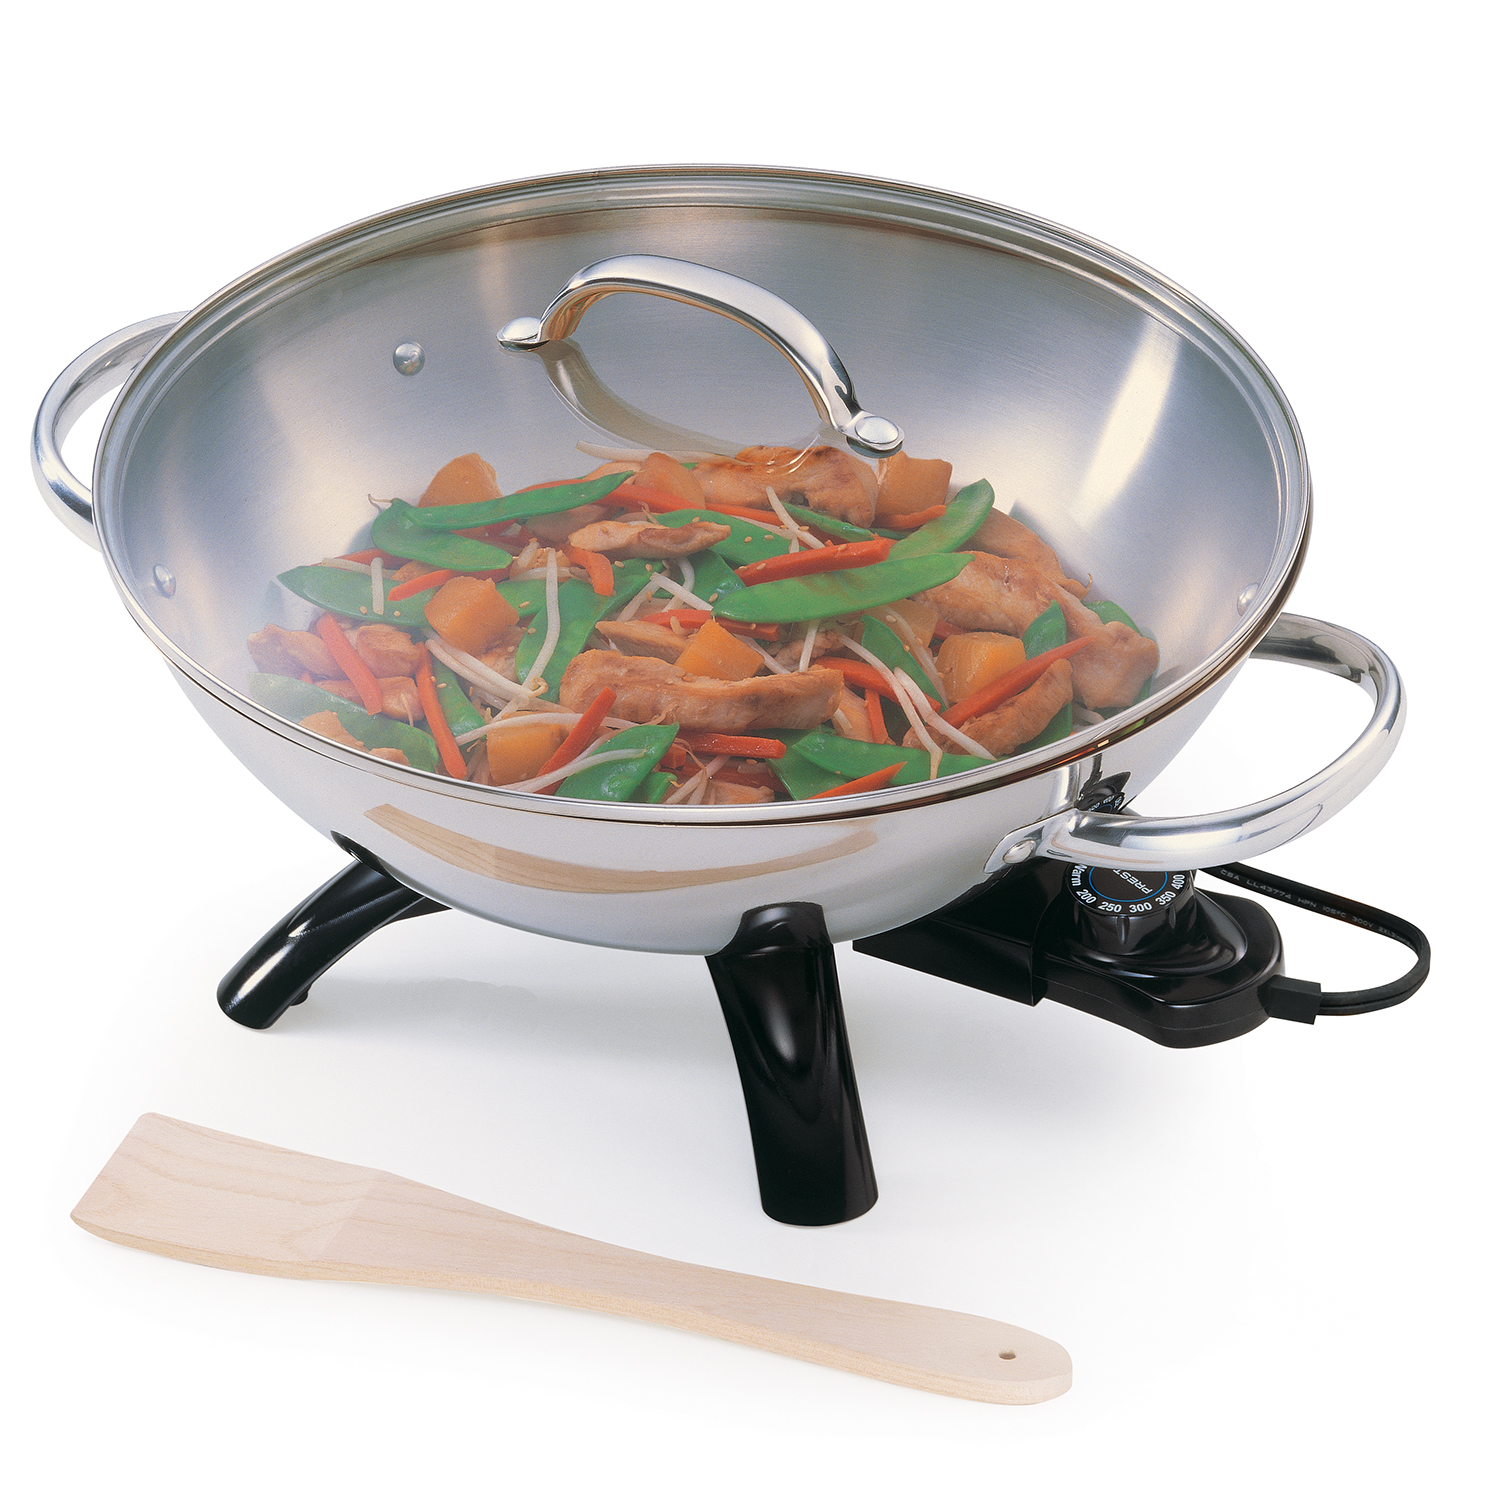 Presto Stainless Steel Electric Wok 05900